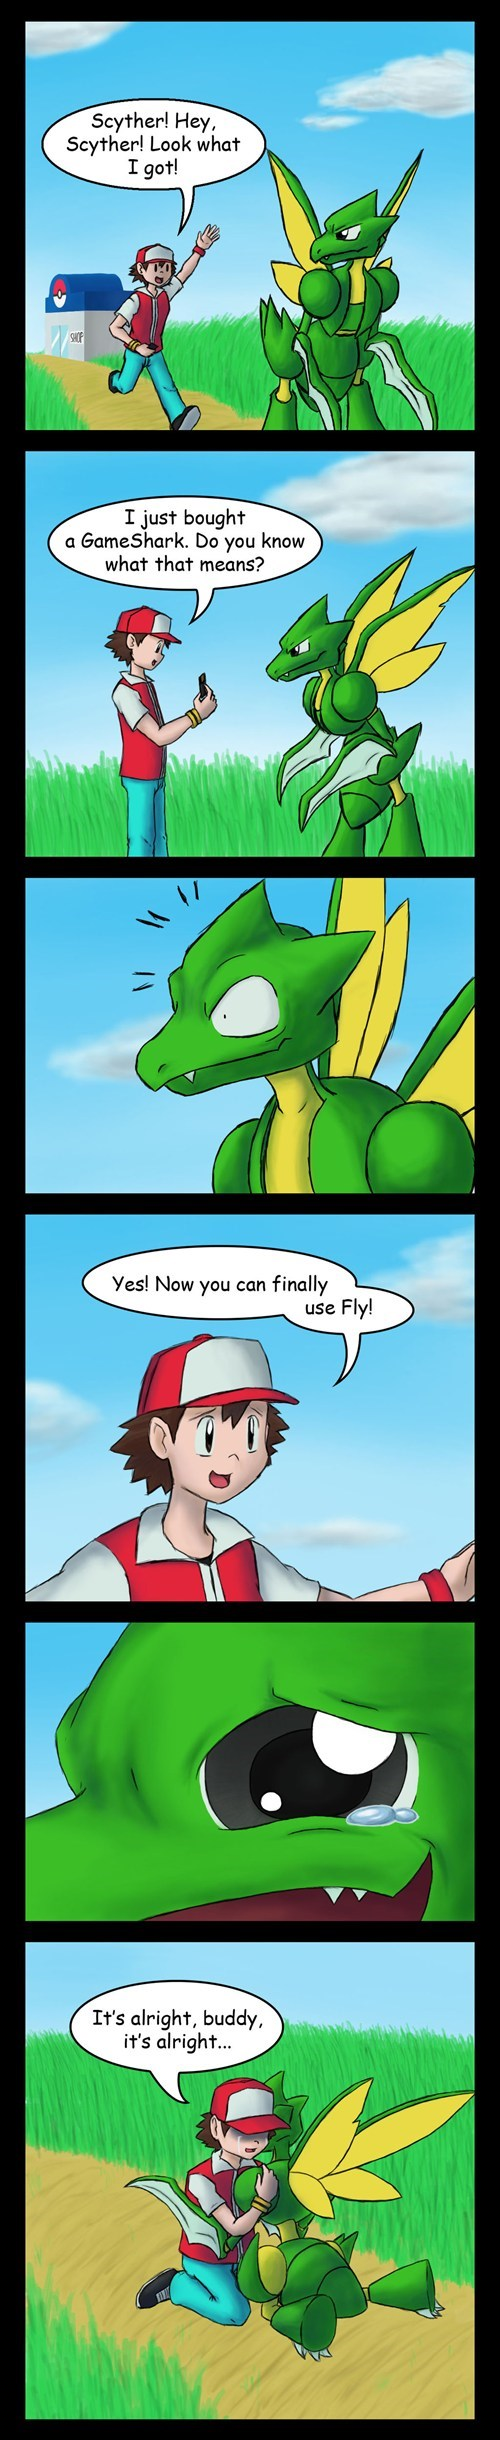 Pokémon fly comics scyther - 7578883840